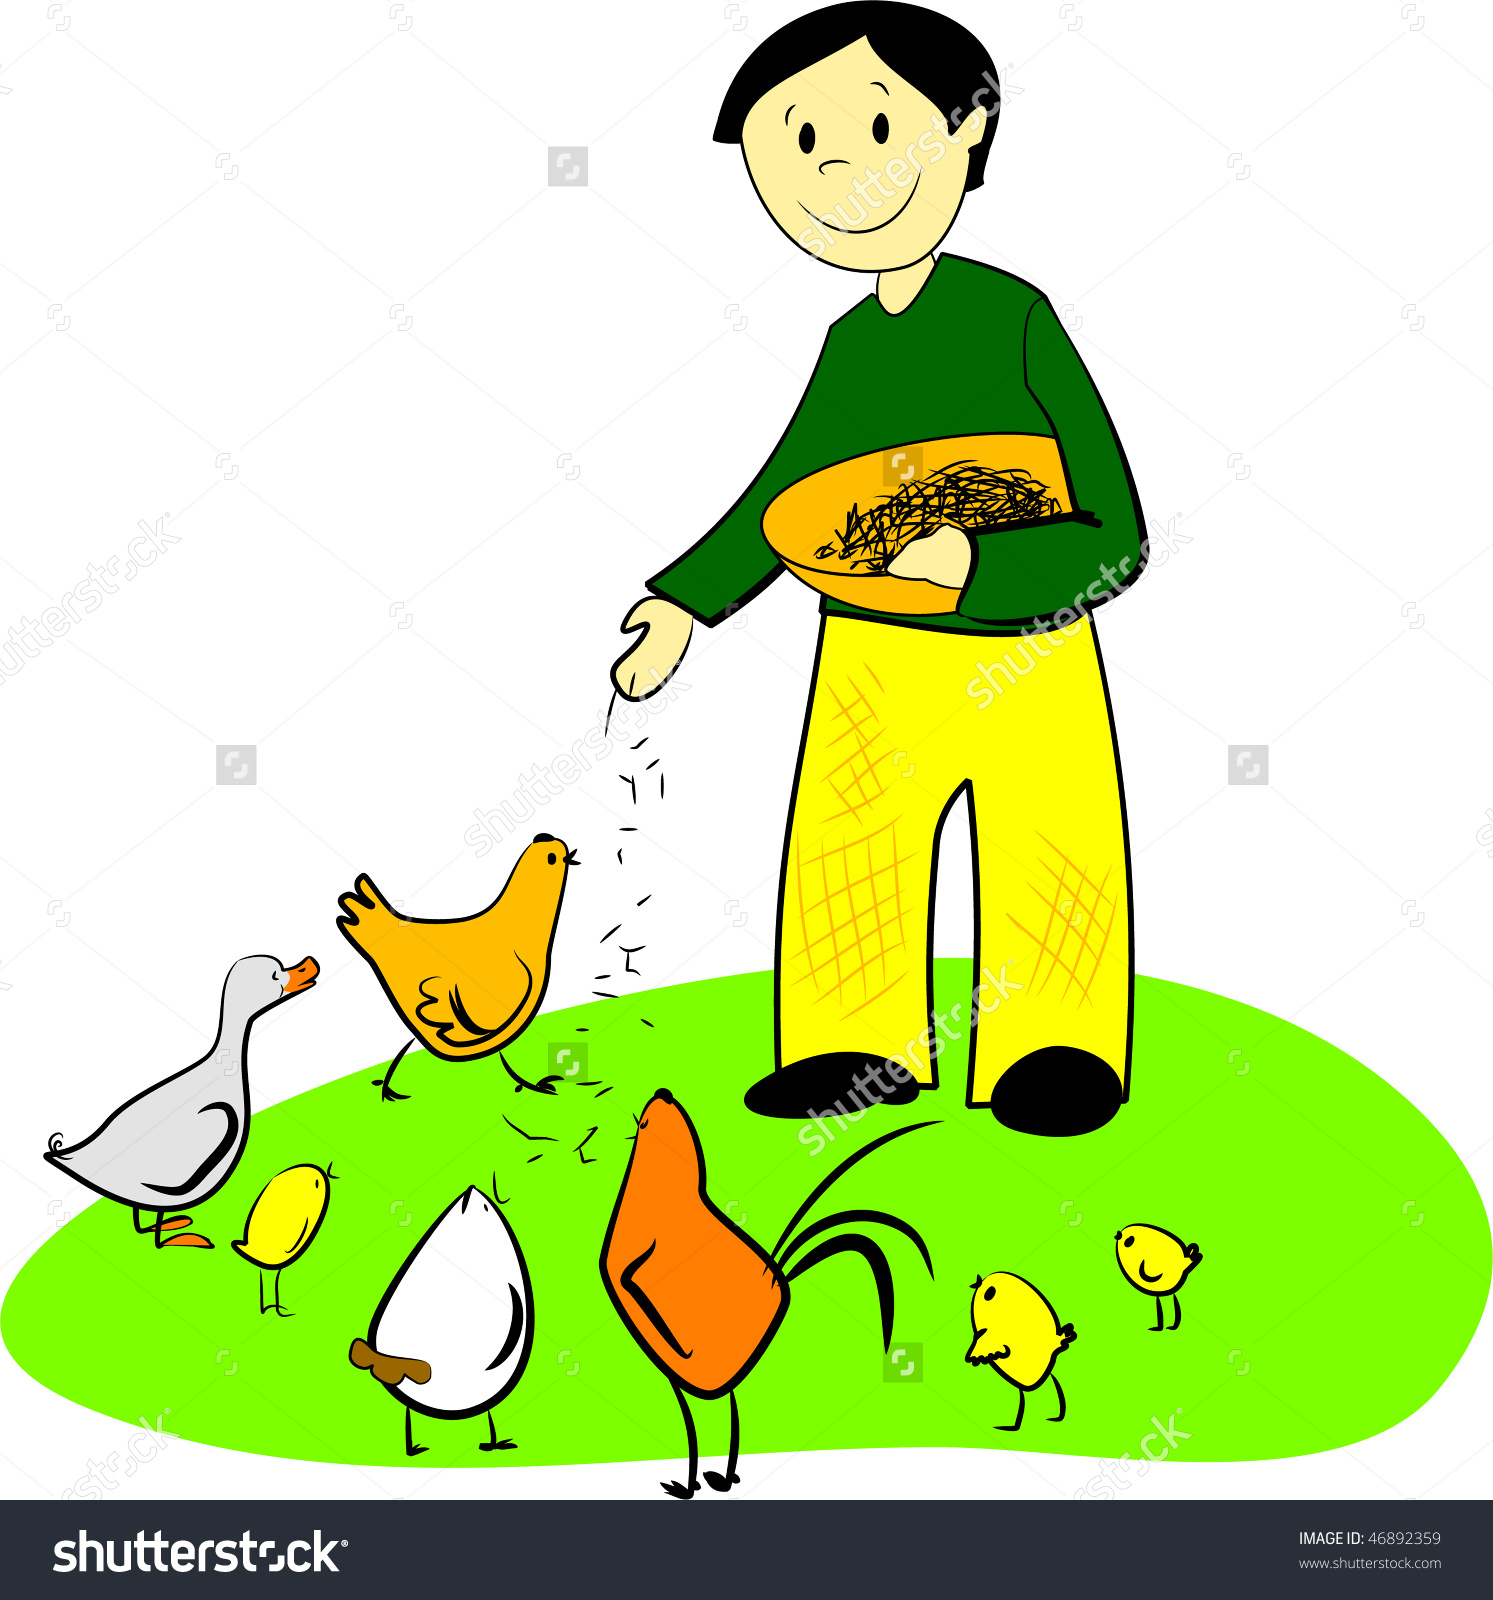 Feeding clipart black and white Collection of Feeding clipart | Free download best Feeding clipart ... black and white